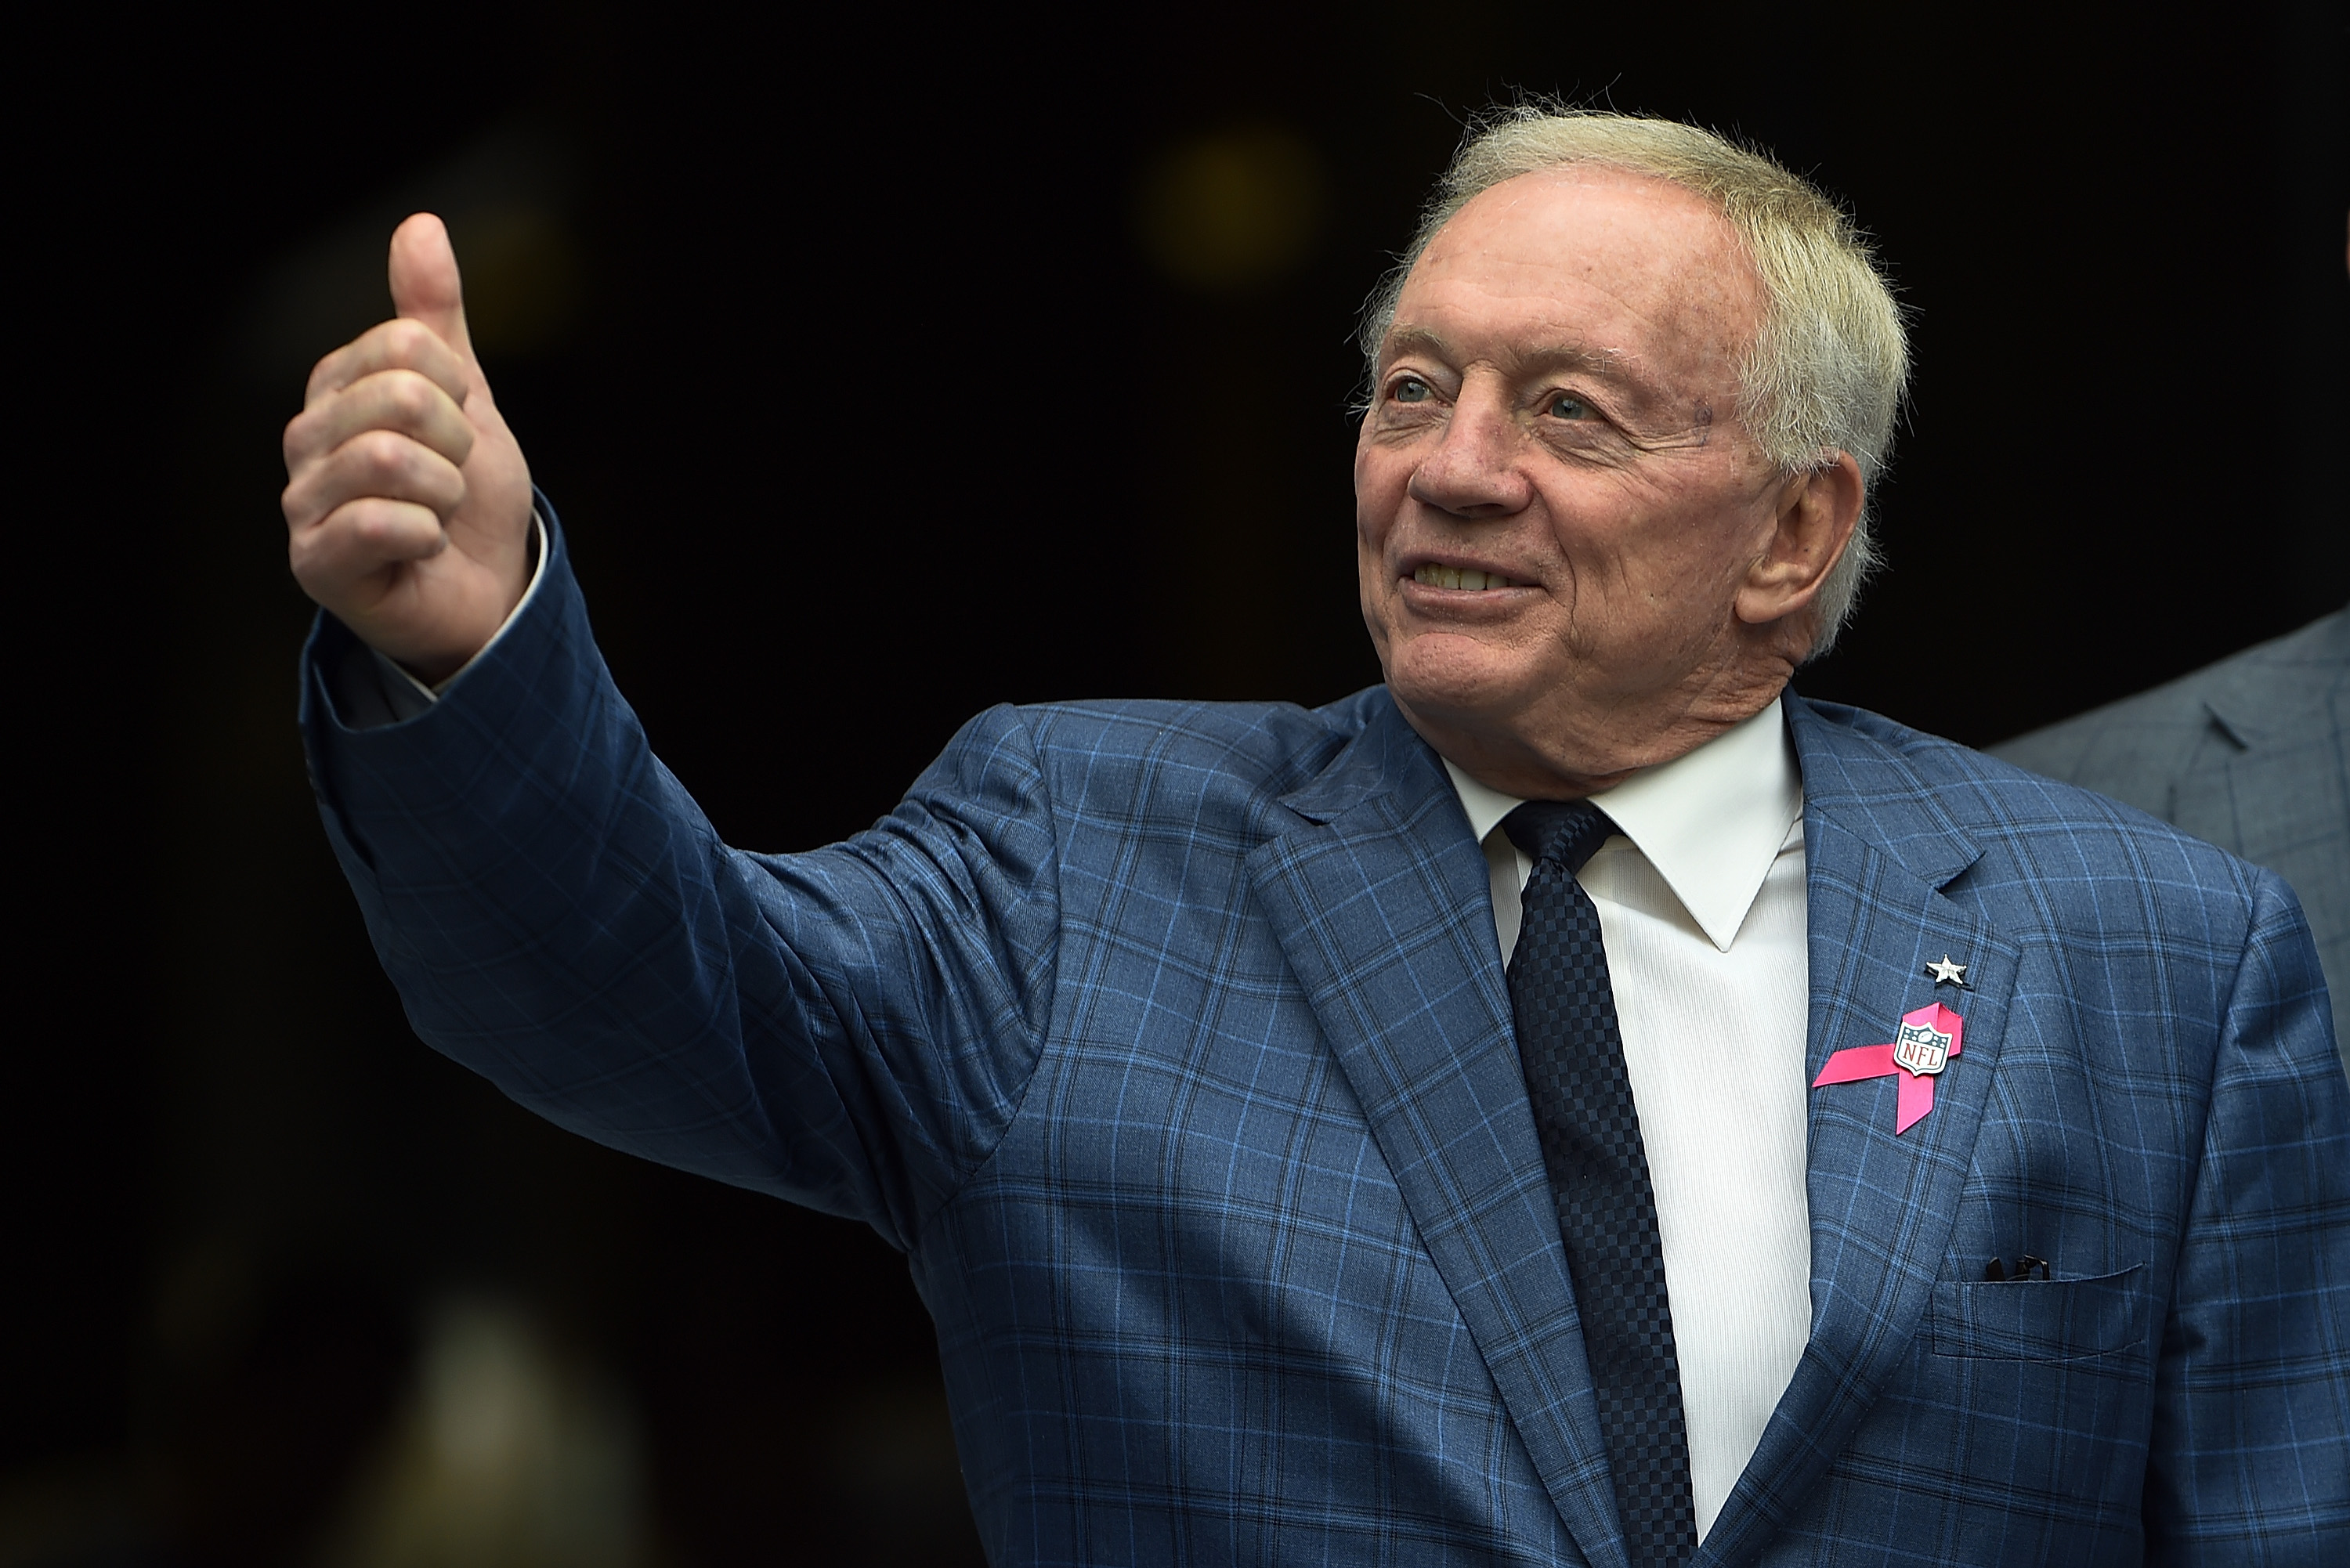 Dallas Cowboys owner Jerry Jones is no stranger to throwing his money around.